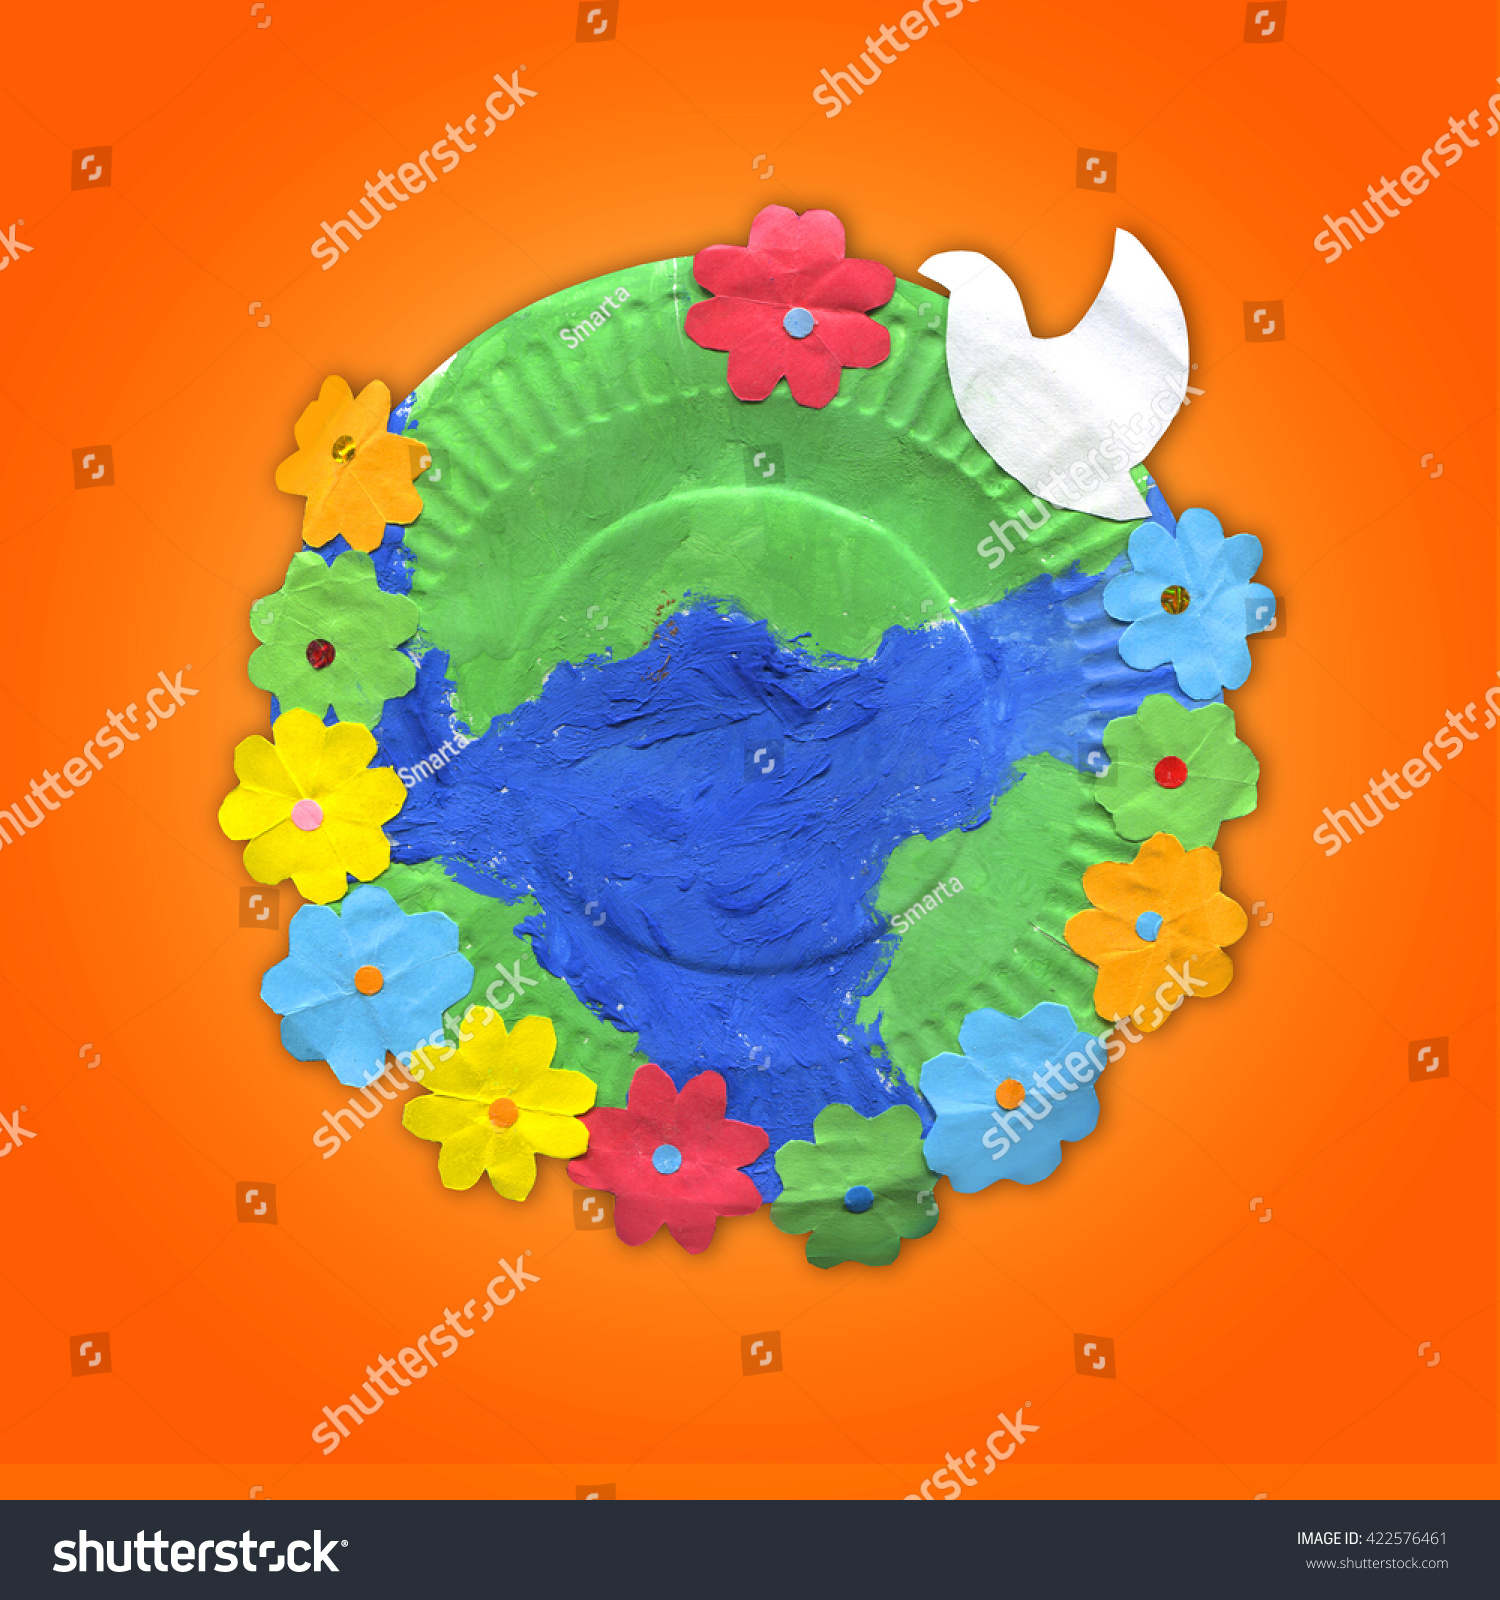 Childrens Crafts Earth Flowers Bird On Stock Photo Edit Now